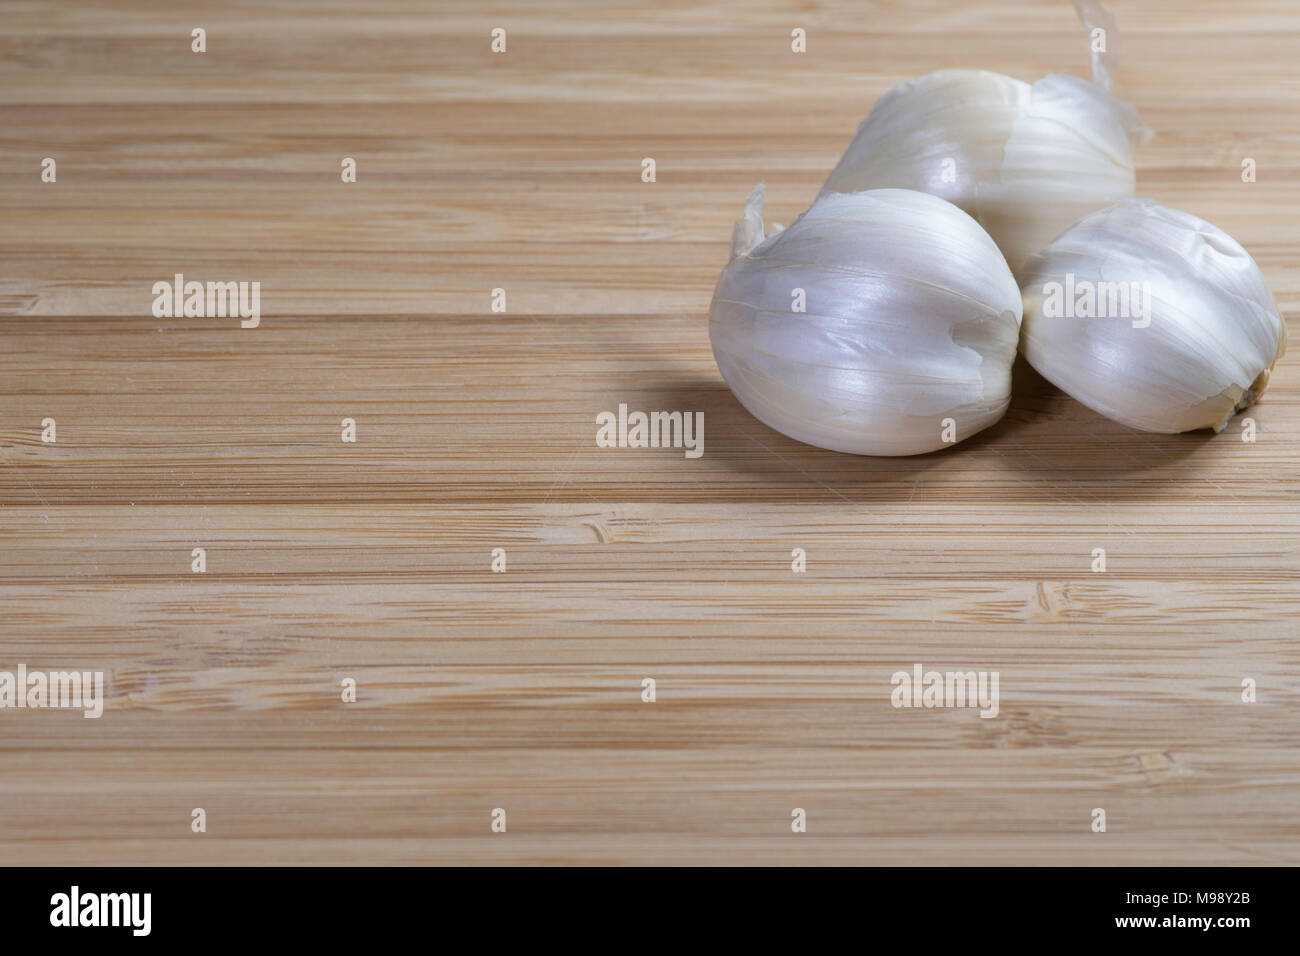 cloves of garlic on a bamboo cutting board background - Stock Image